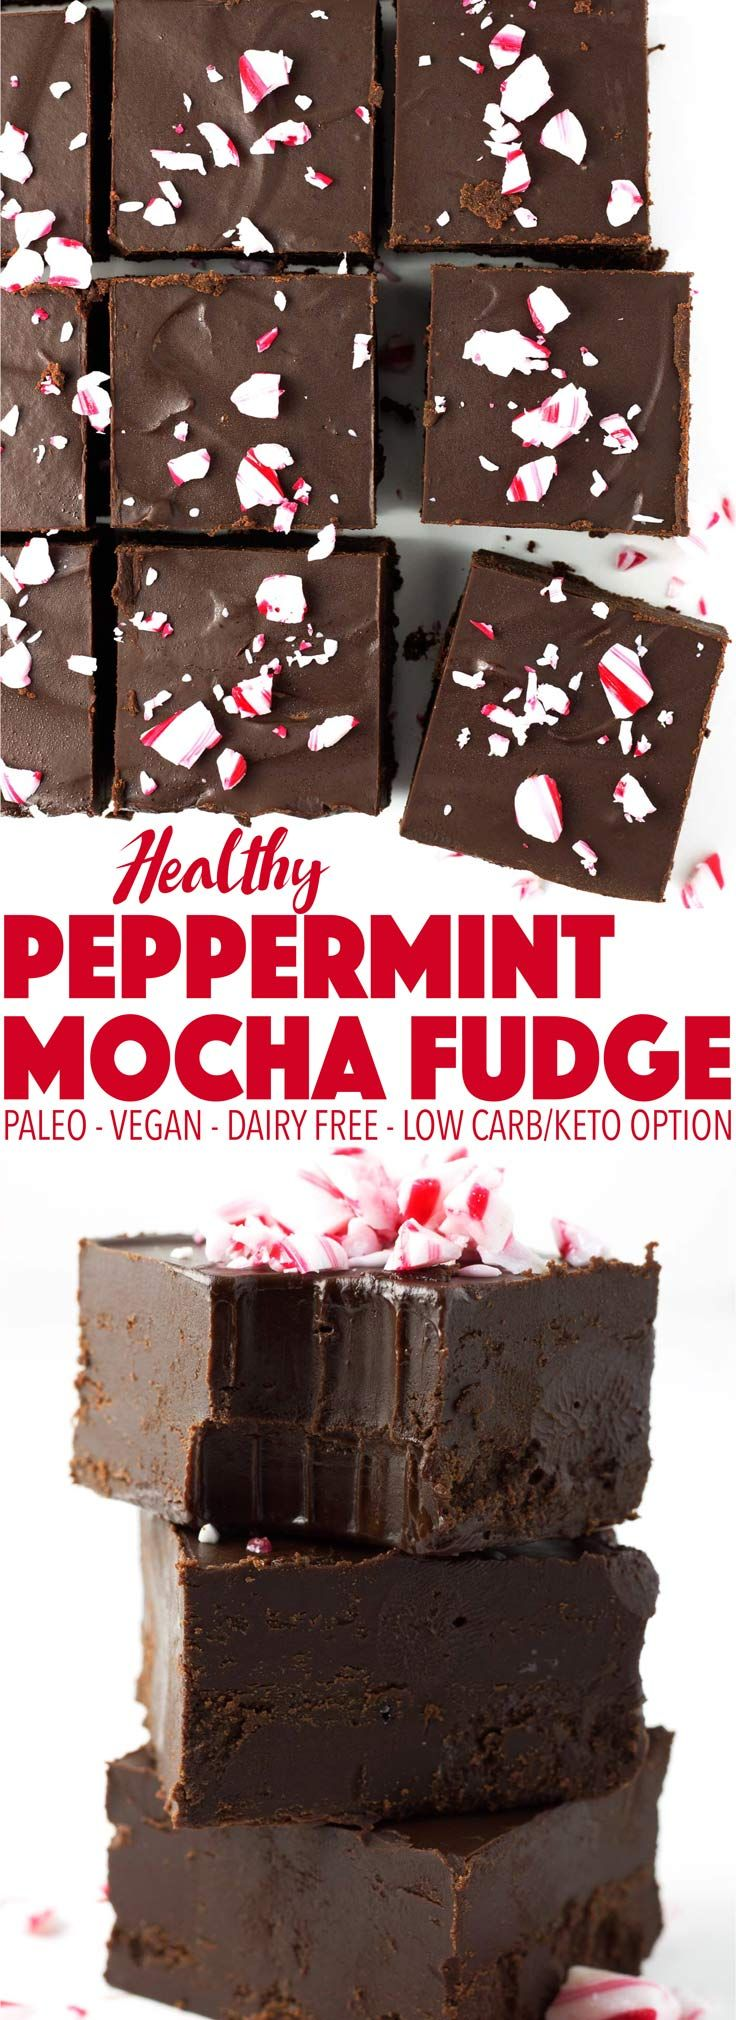 Easy to make and perfect for the holiday season! This peppermint mocha fudge is delicious as a Christmas dessert. It's paleo, vegan, dairy free, and can be made keto and low carb!